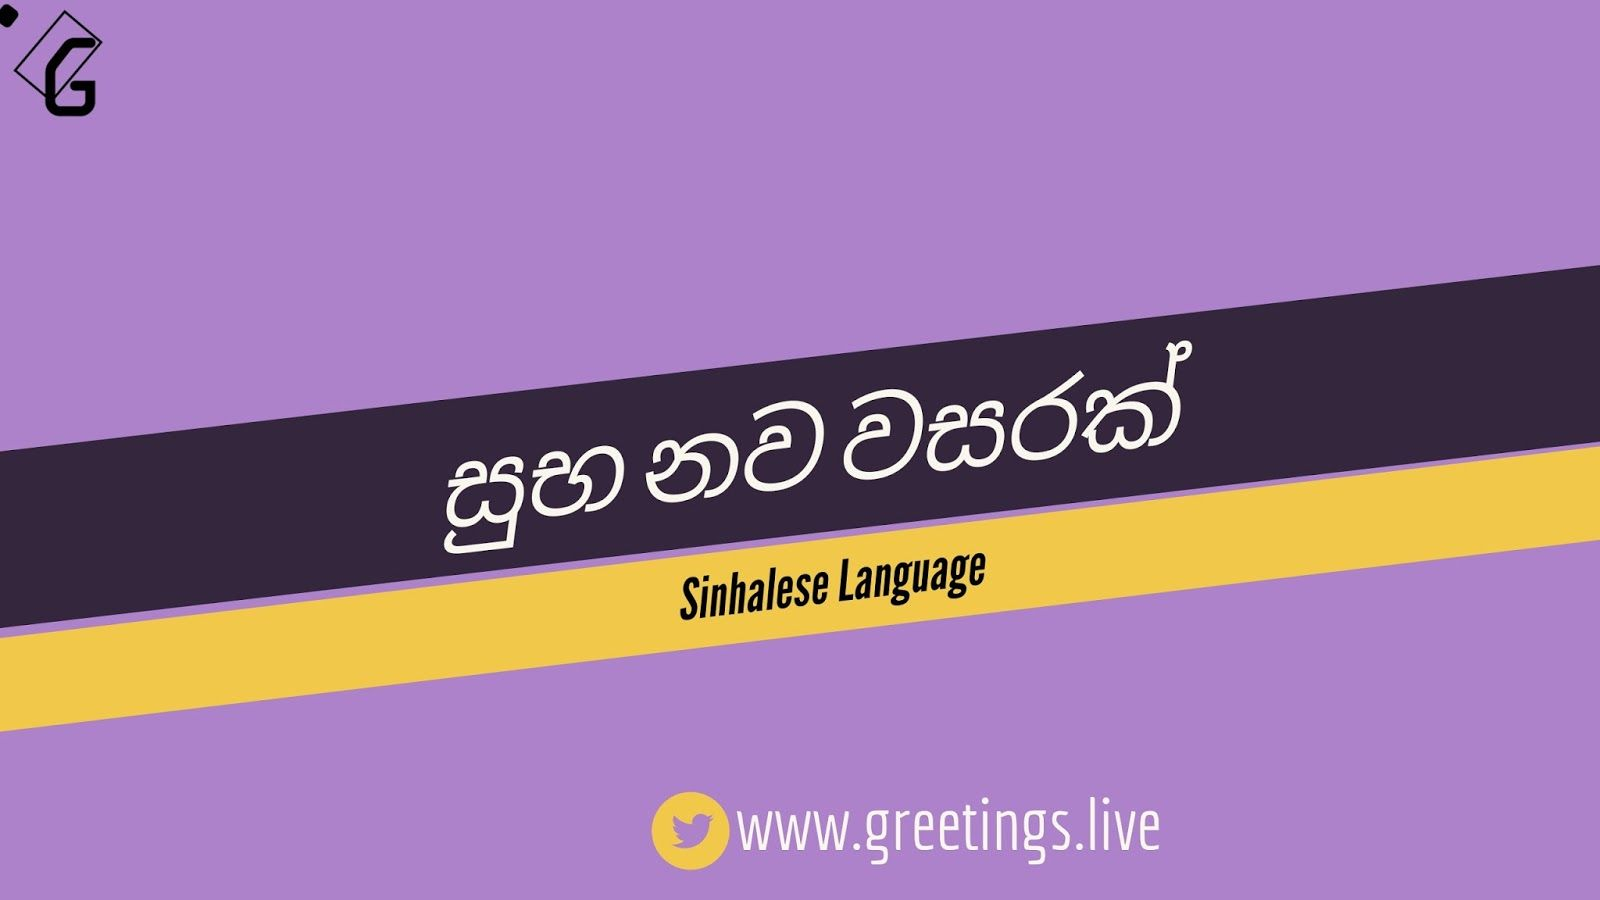 Purple And White New Year Greetings In Sinhalese Language New Year